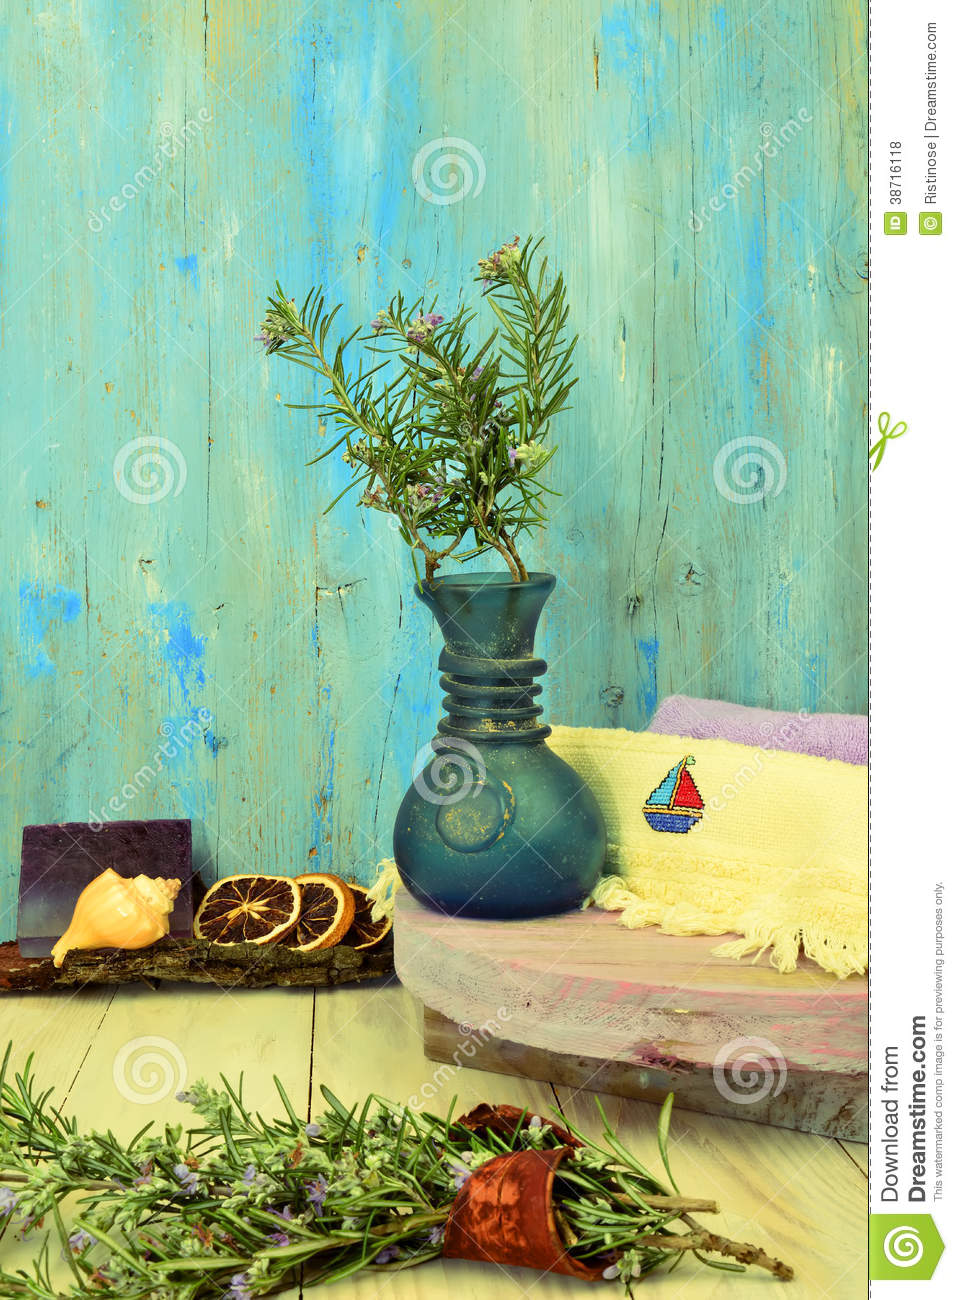 Aromatherapy Rustic Background Royalty Free Stock Photos